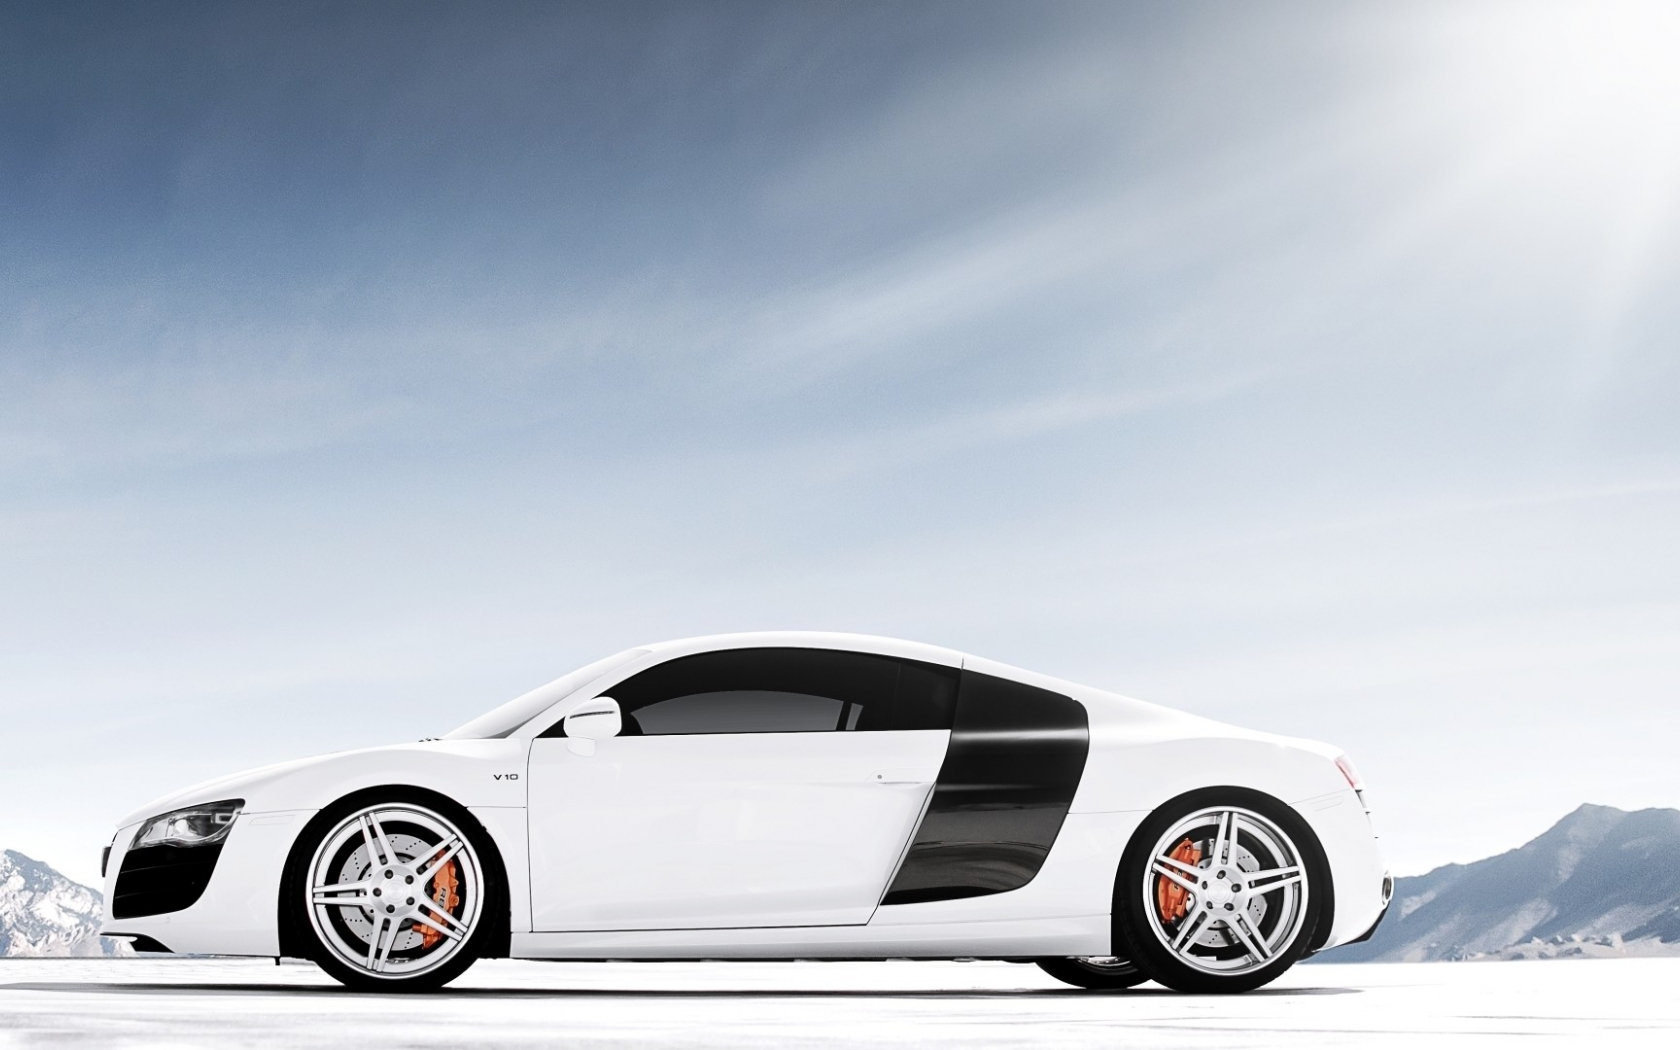 Download Audi Cars Hd Wallpapers For Mobile 1920x1080 96 Audi